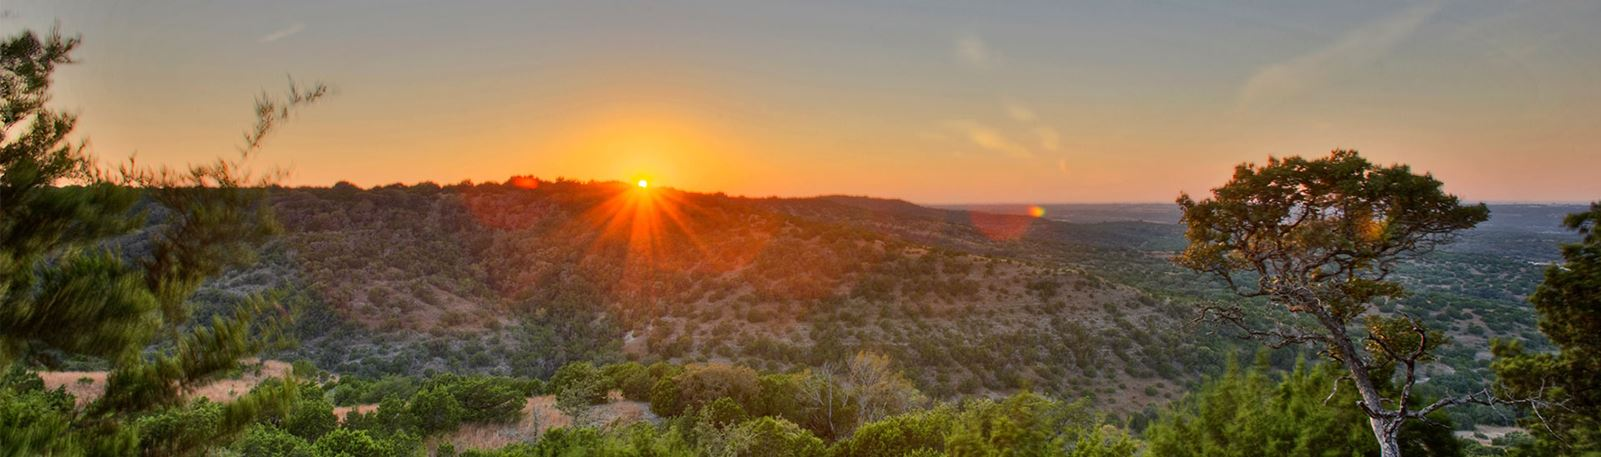 Sweetwater View of Austin's Hill Country